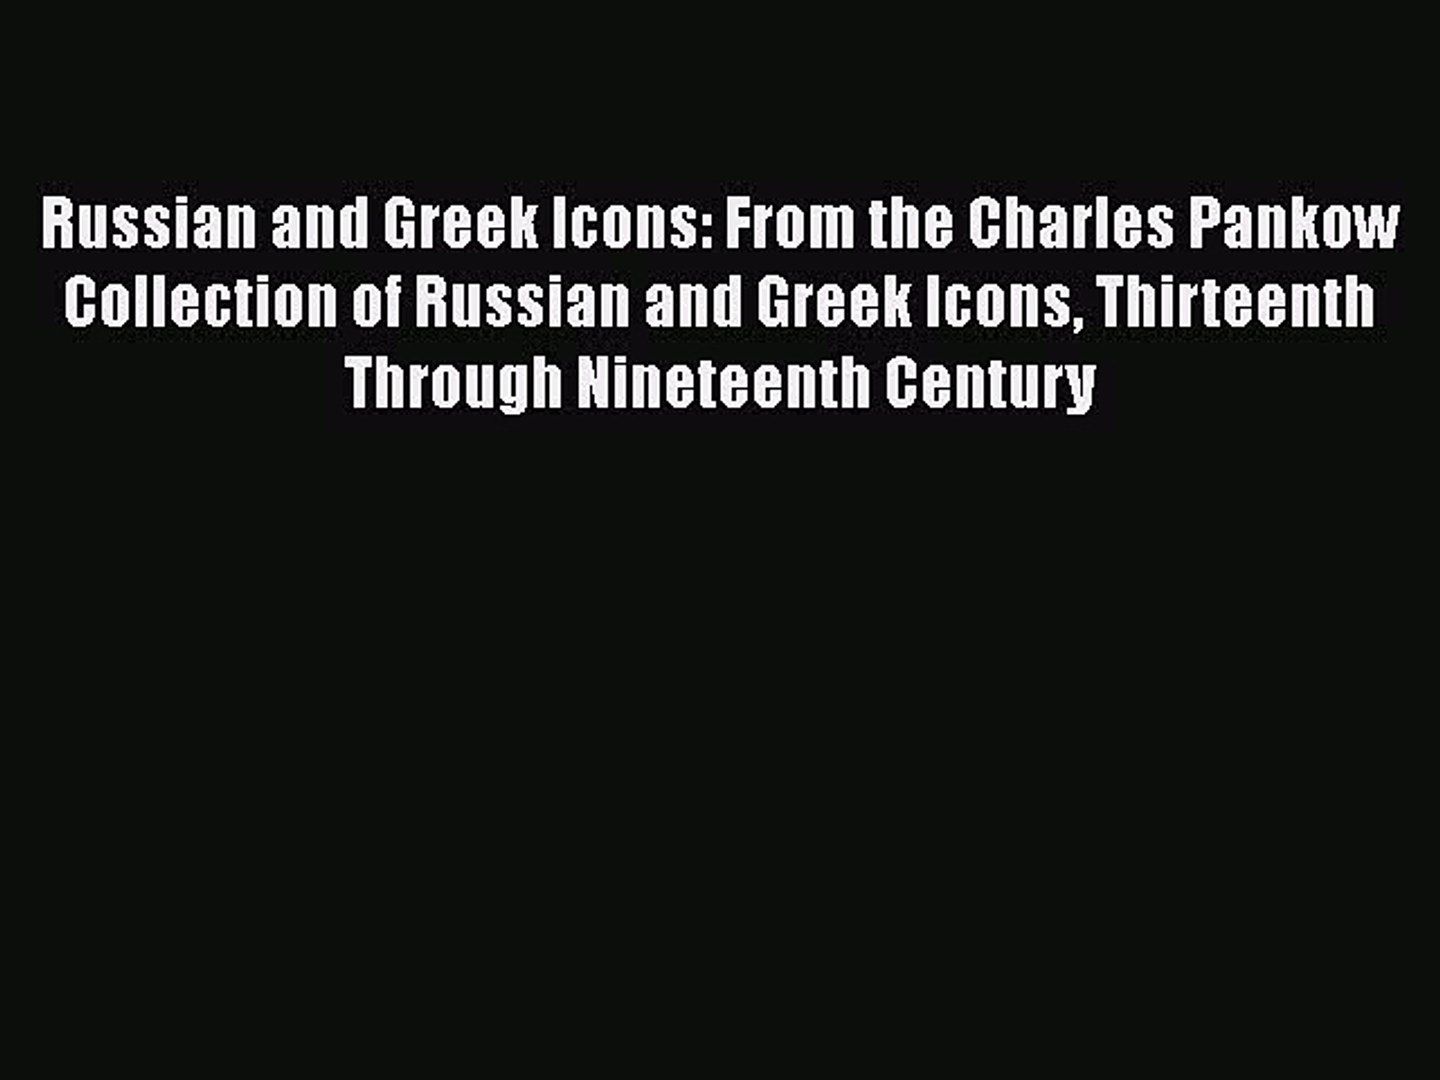 Read Russian and Greek Icons: From the Charles Pankow Collection of Russian and Greek Icons